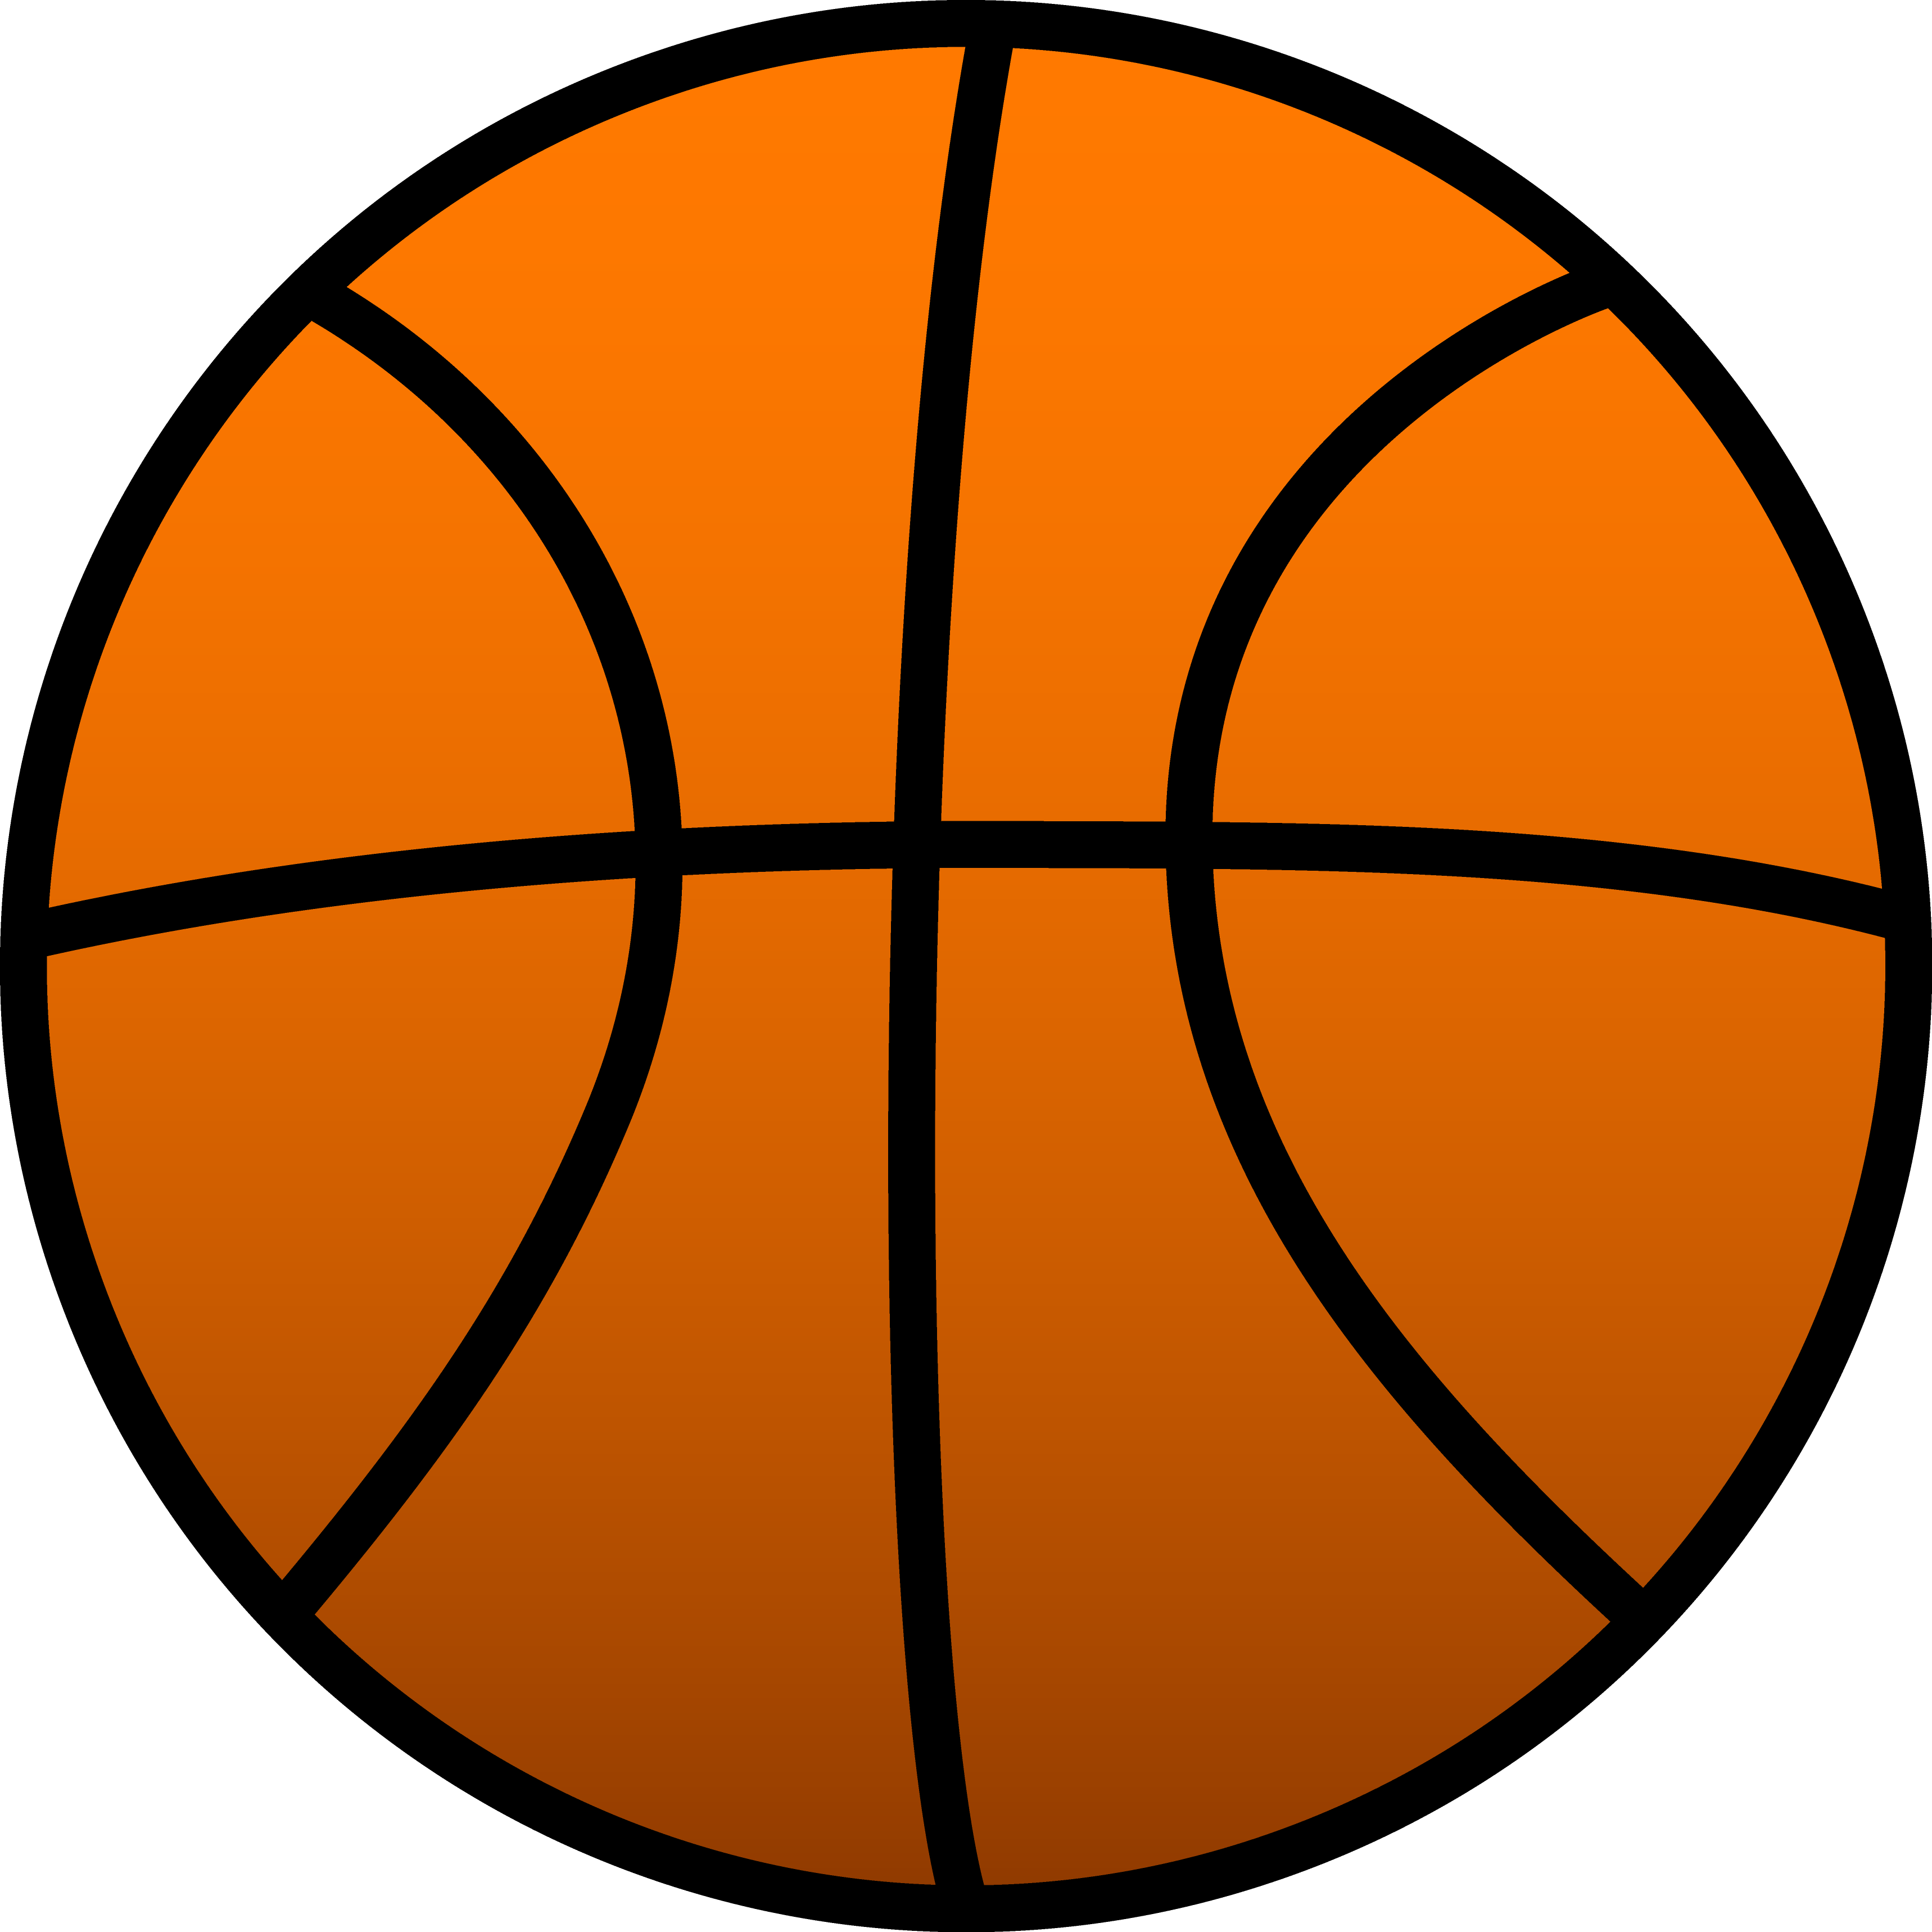 Basketball clipart free download clipart freeuse Orange Basketball Clipart free image clipart freeuse